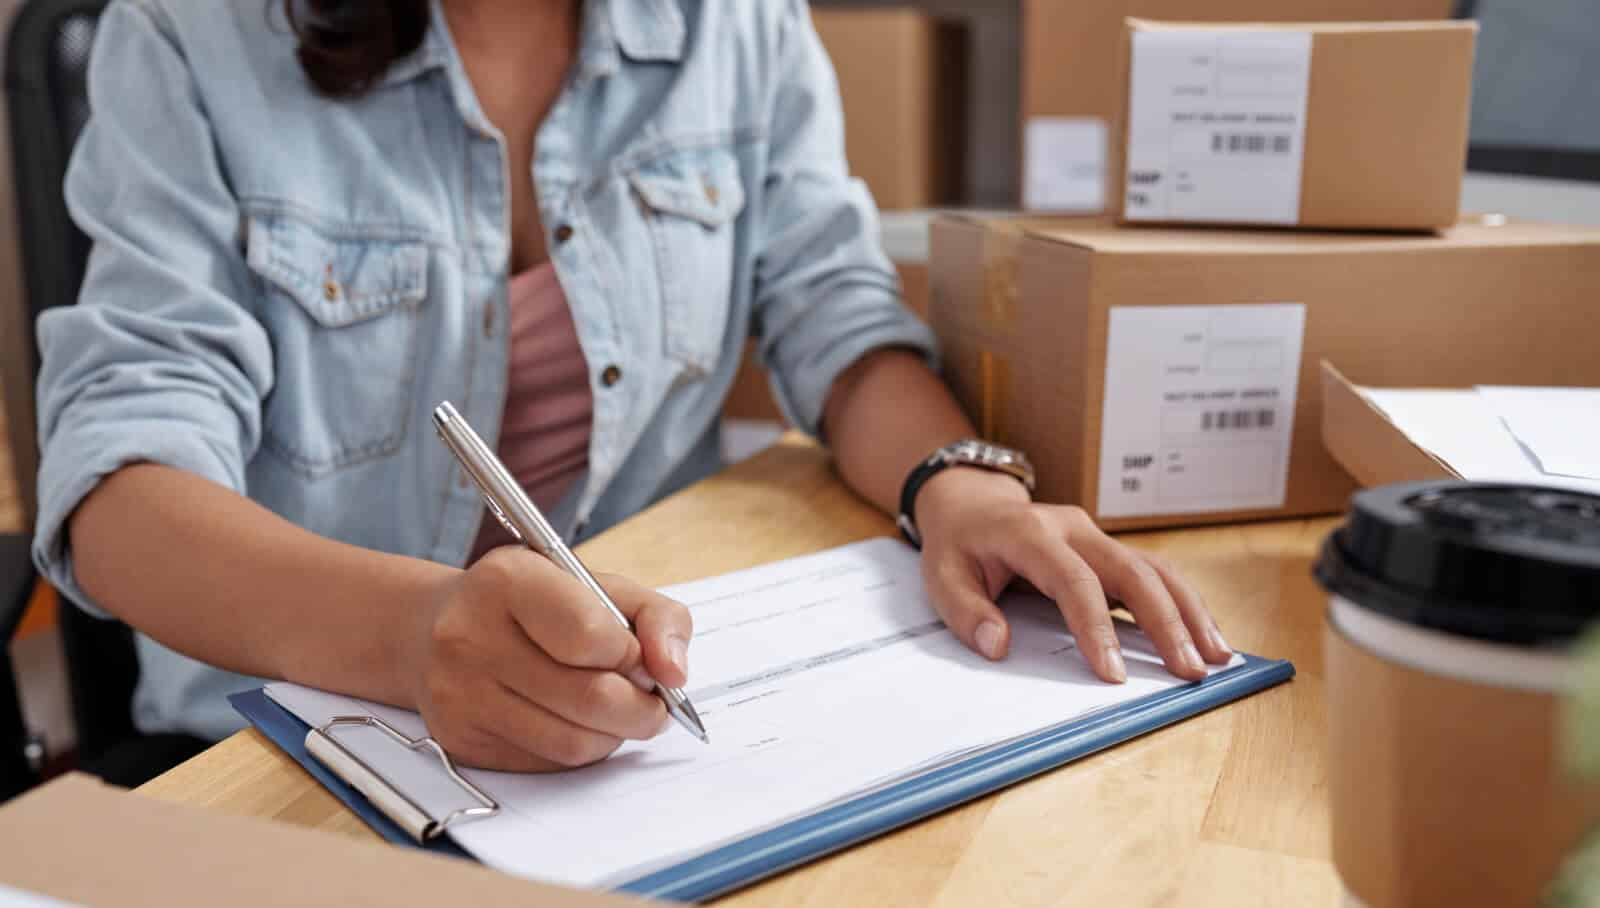 Forming an LLC provides flexibility in operating your new business